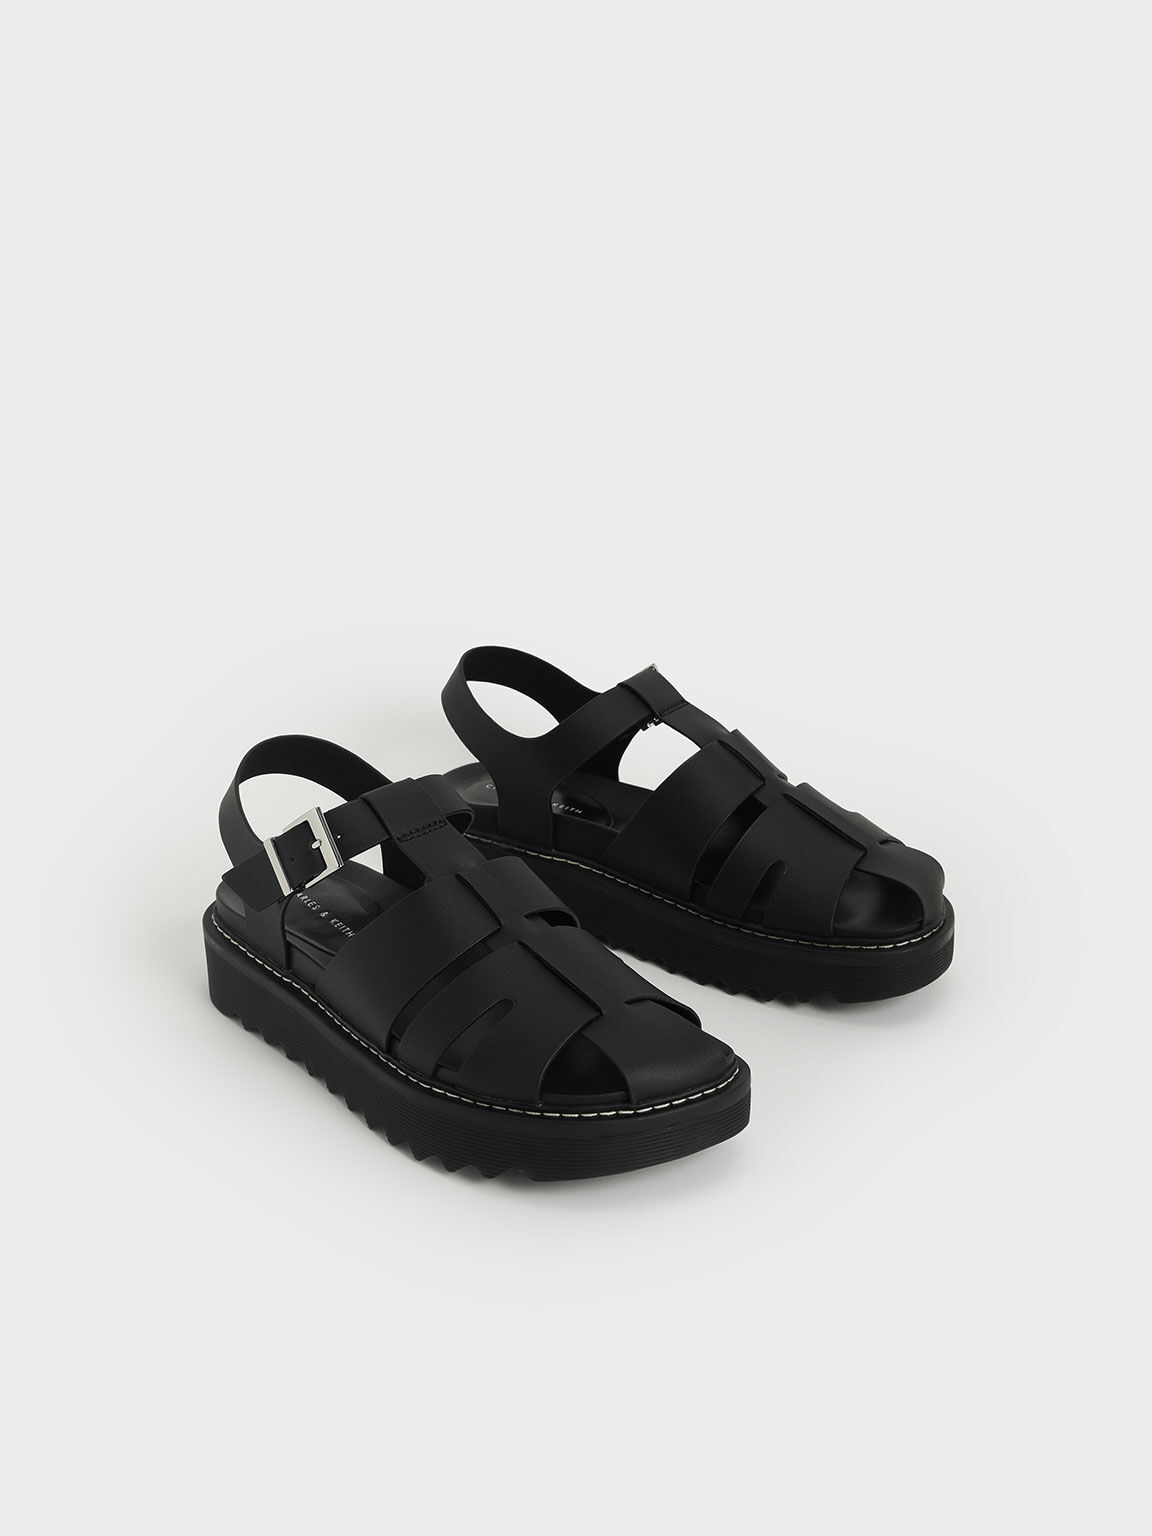 Cut-Out Sports Sandals, Black, hi-res